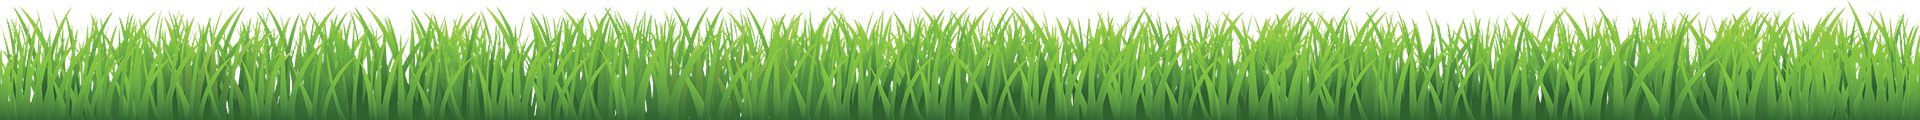 Transparent grass graphic